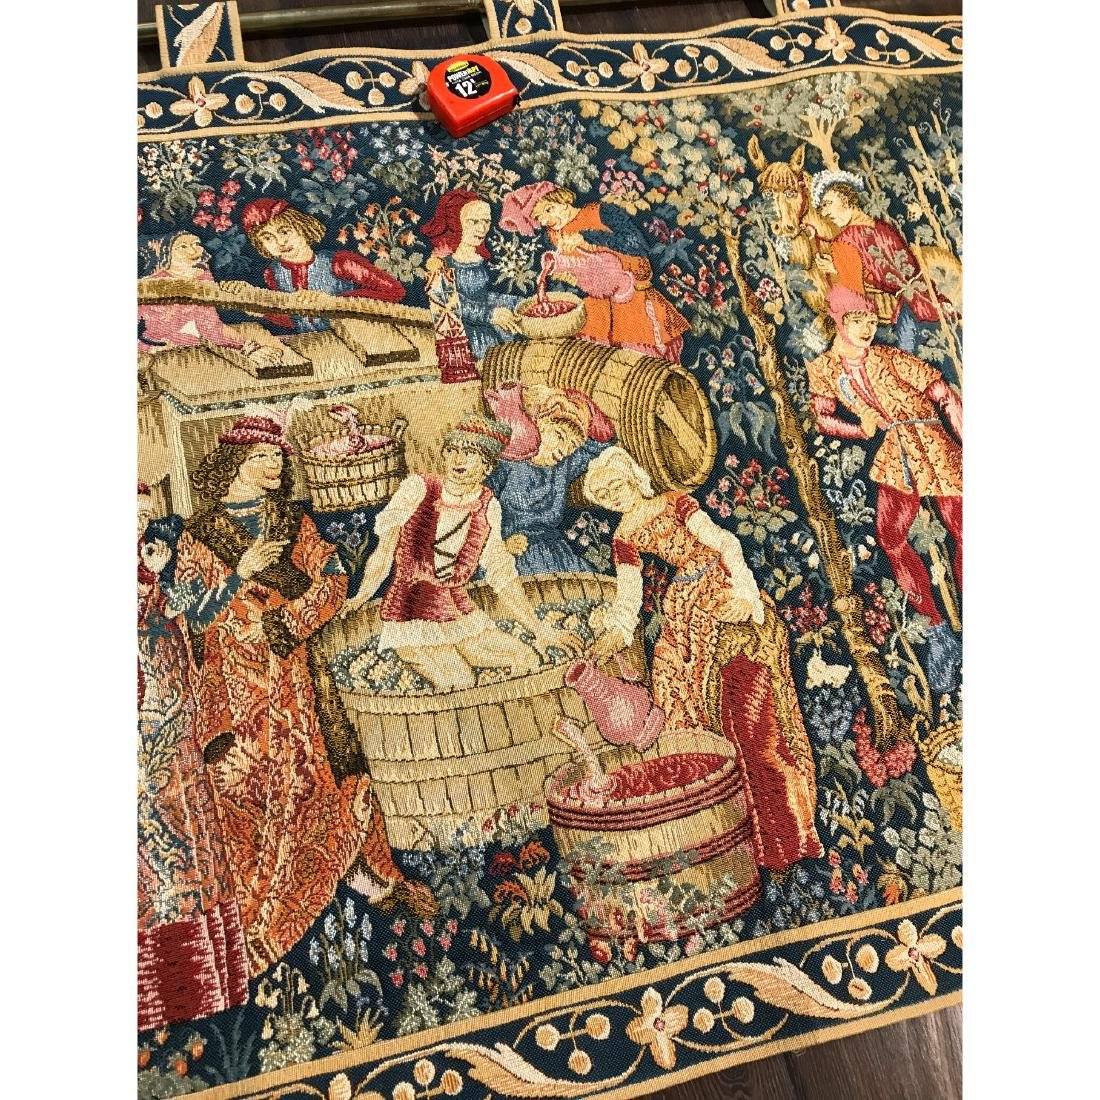 Tapestry with Scene of Medieval Wine Making w/ Rod - 10